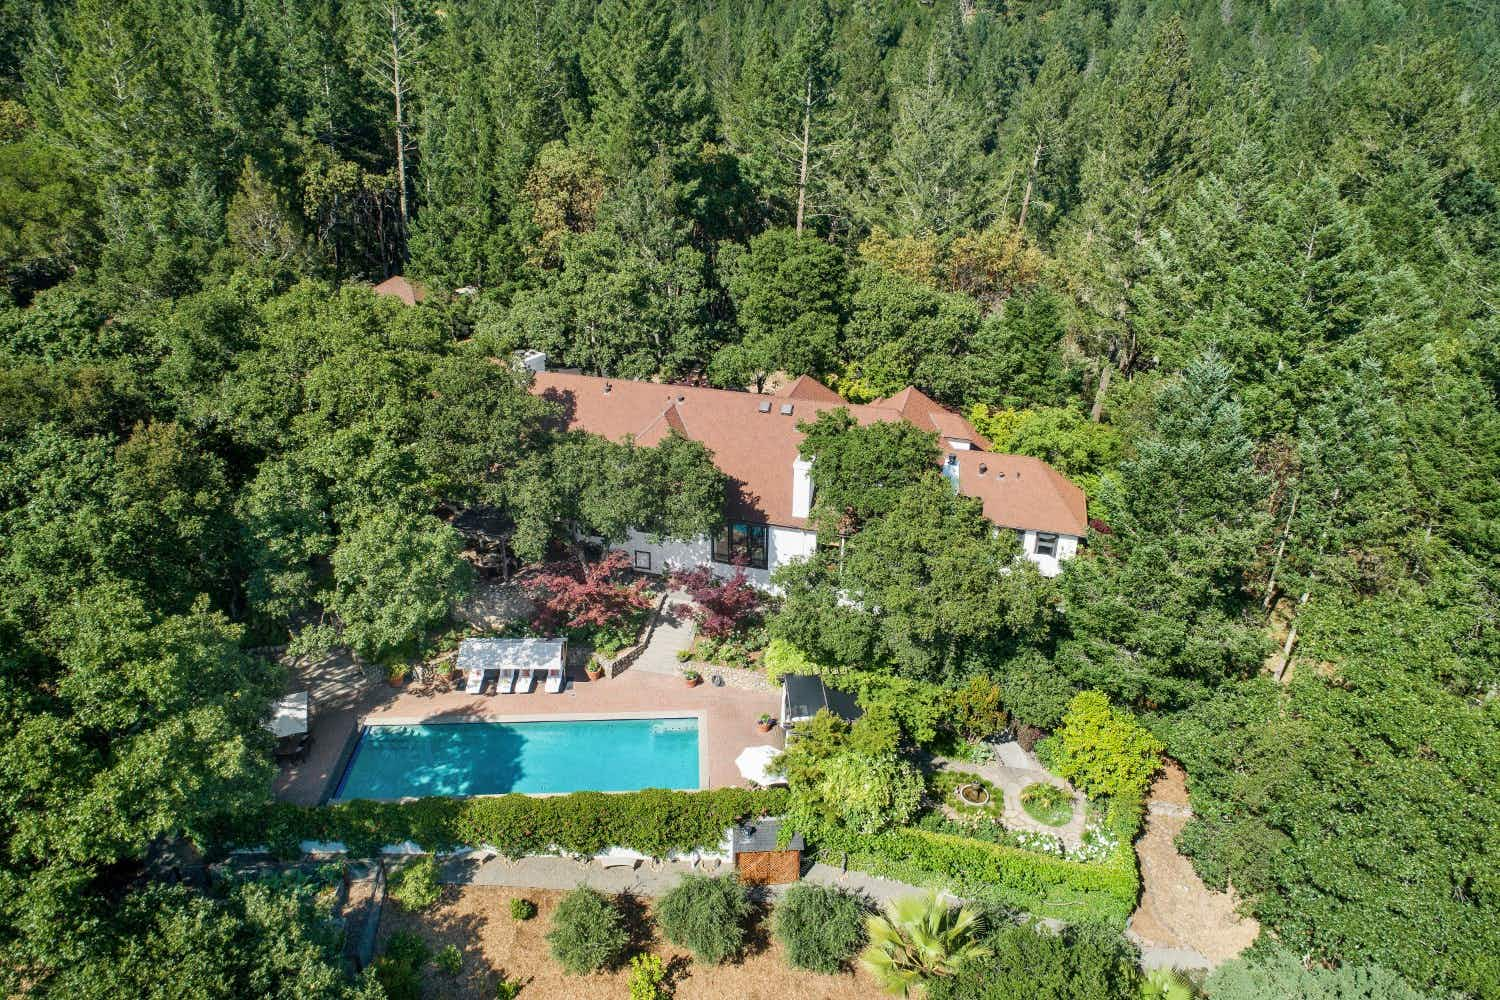 You can buy Robert Redford's Napa Valley home complete with art studio for $7.5m